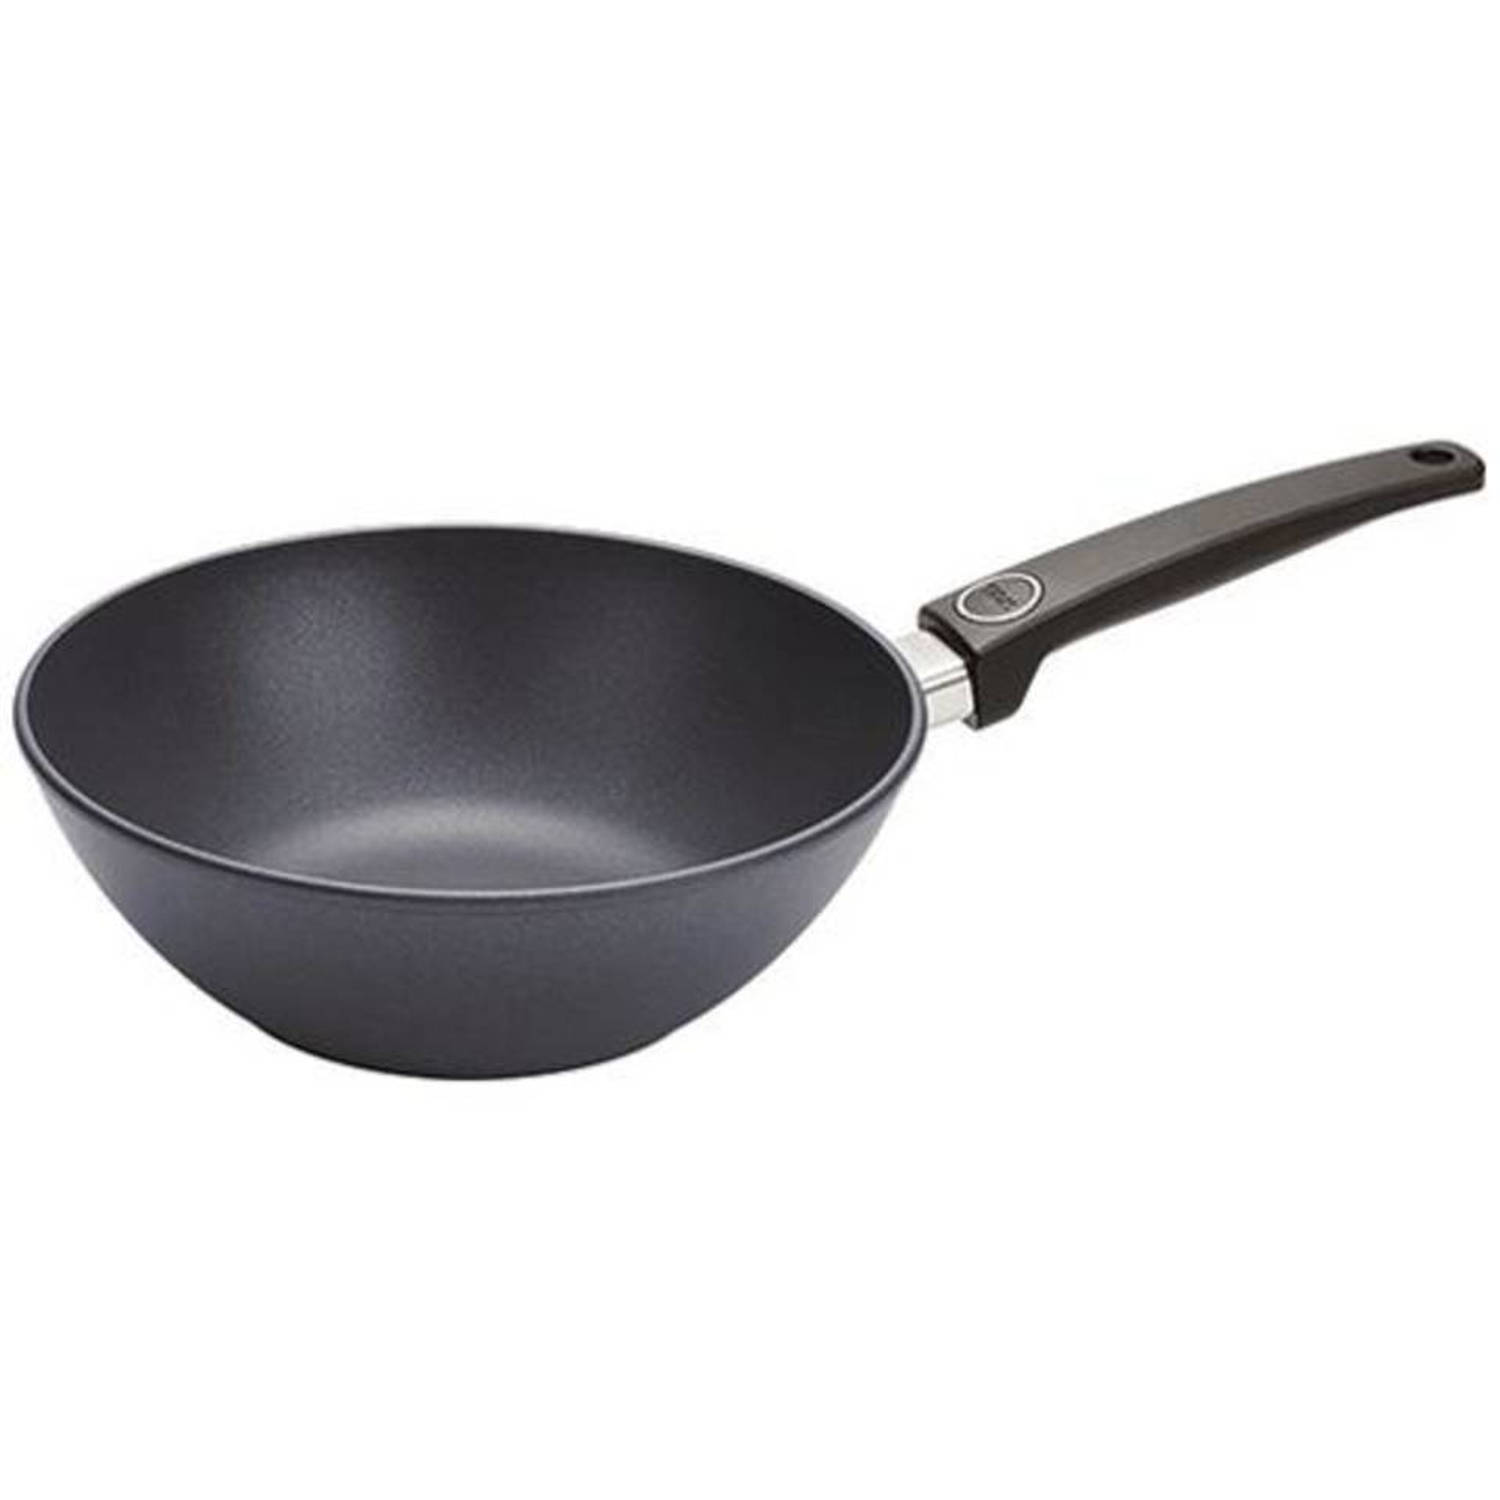 Wok, 26cm - woll - saphir lite induction